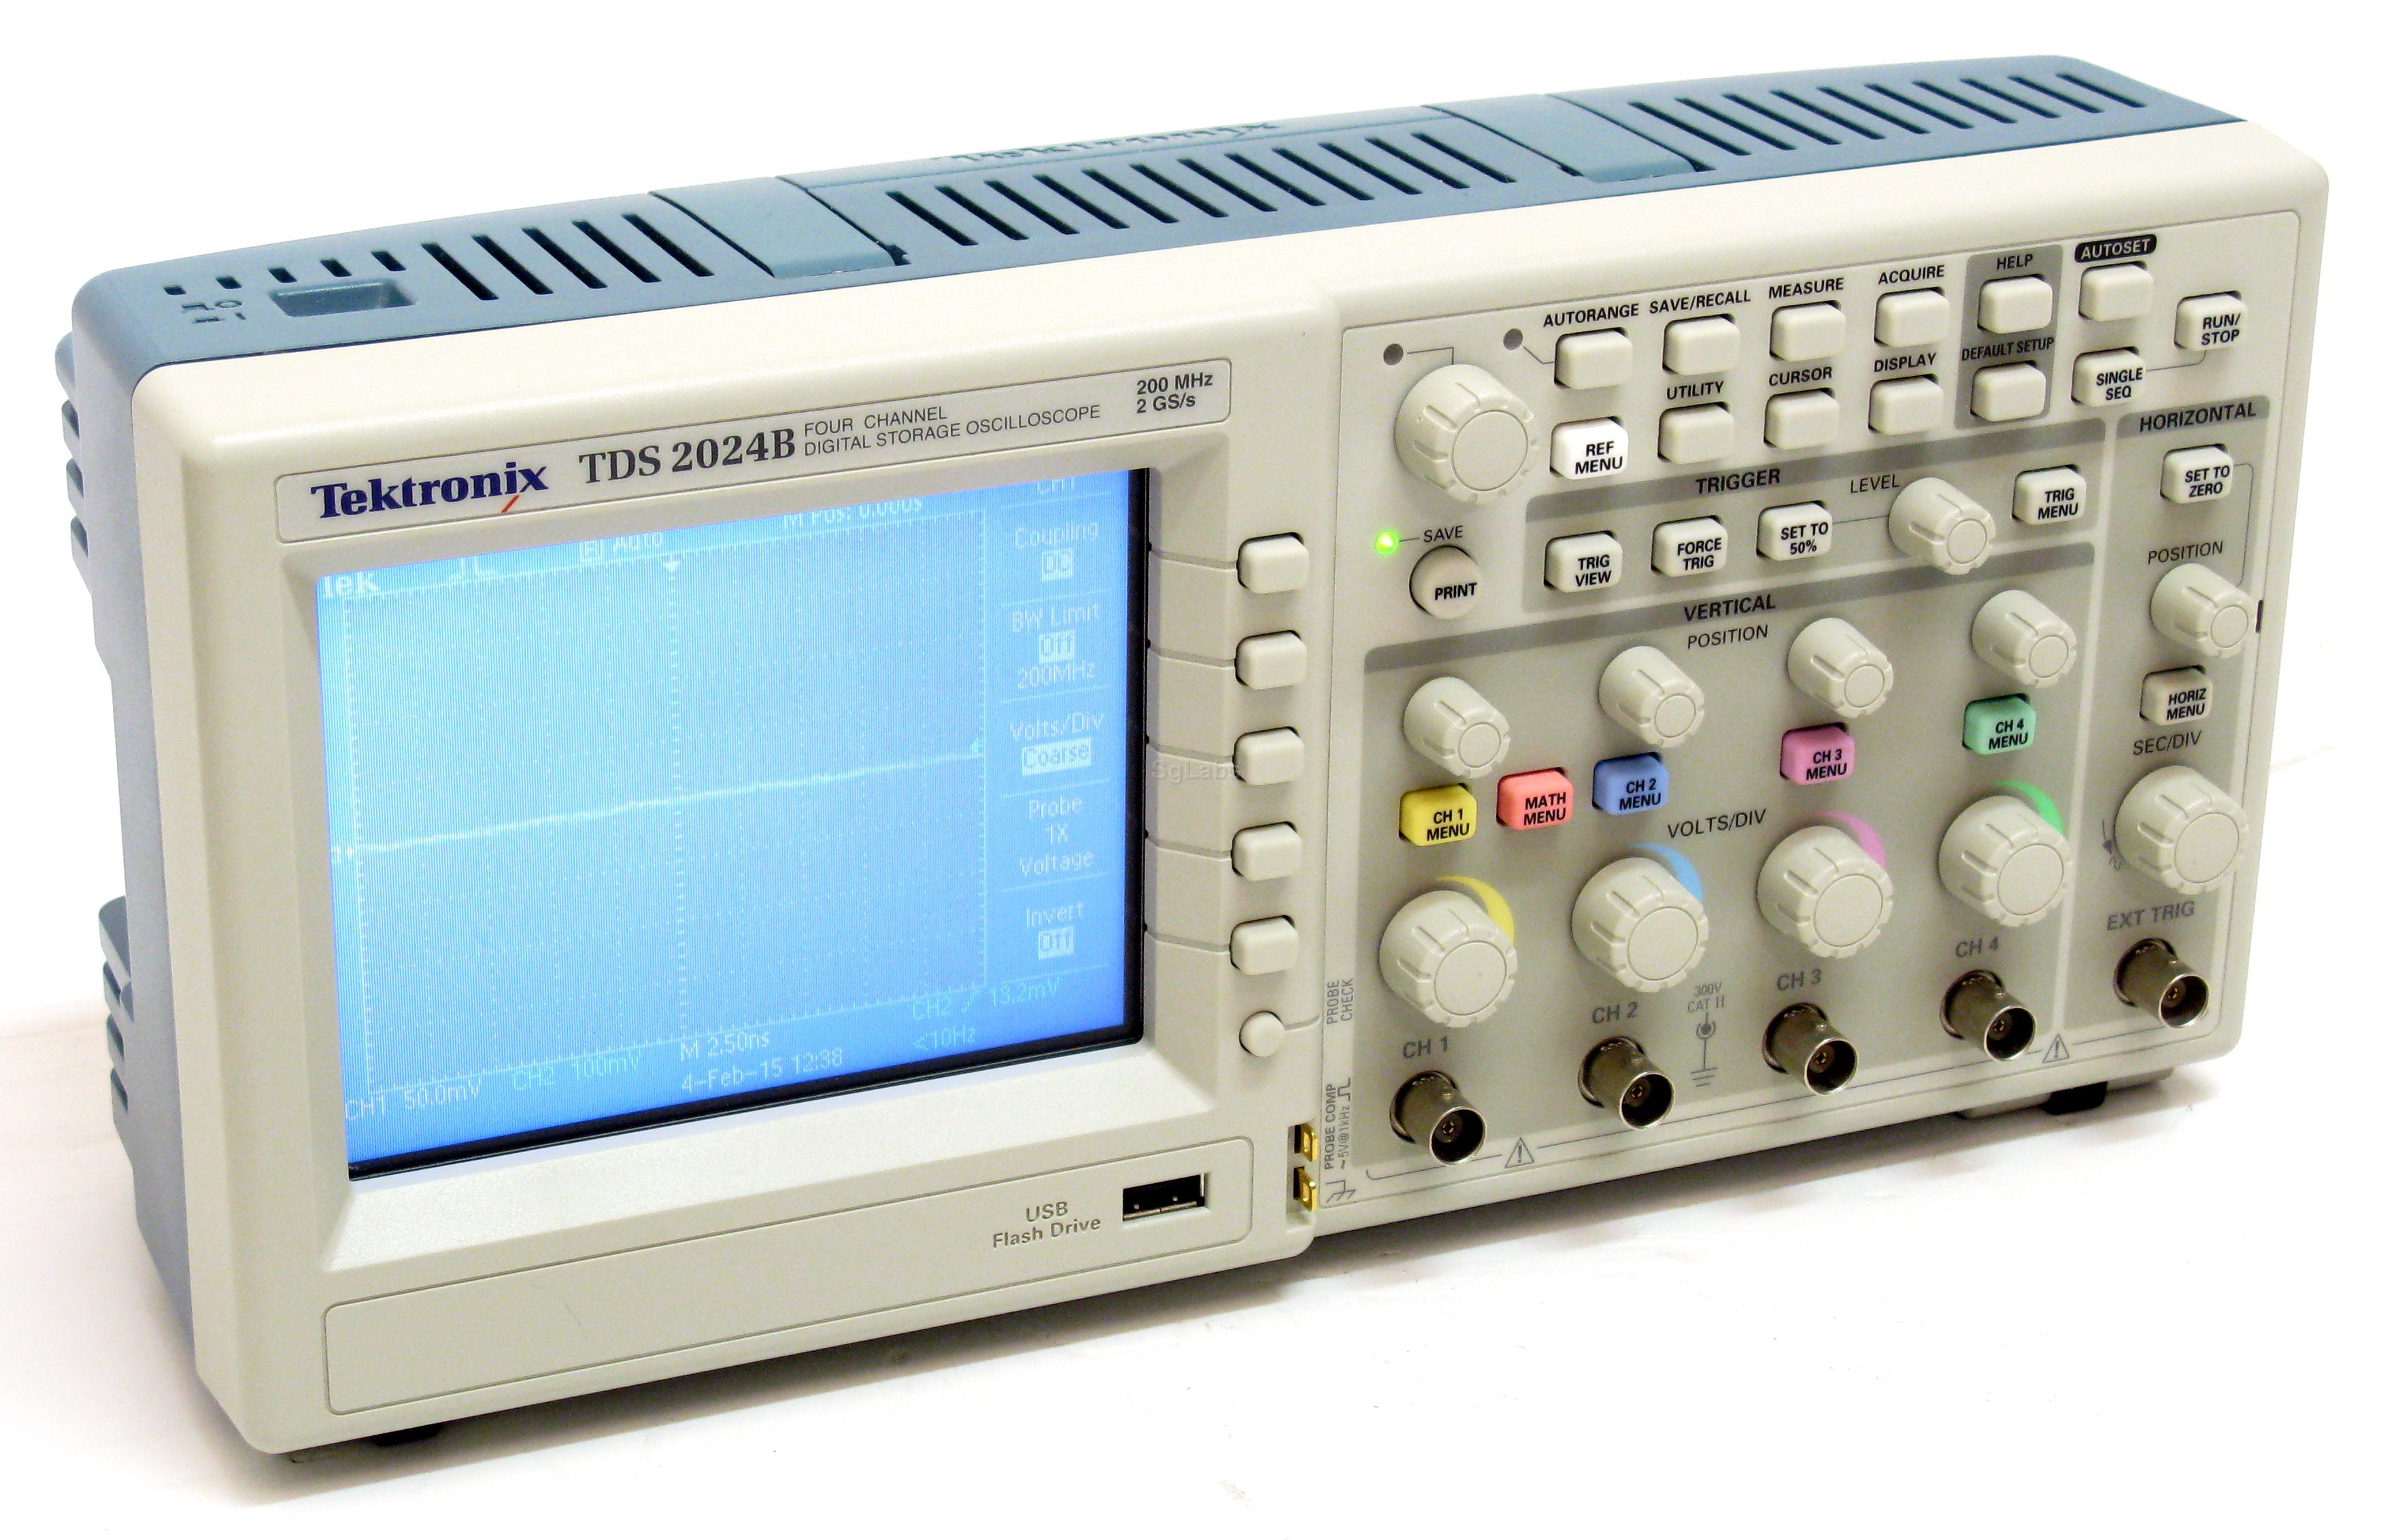 TEKTRONIX TDS2024B USB WINDOWS 8 DRIVER DOWNLOAD